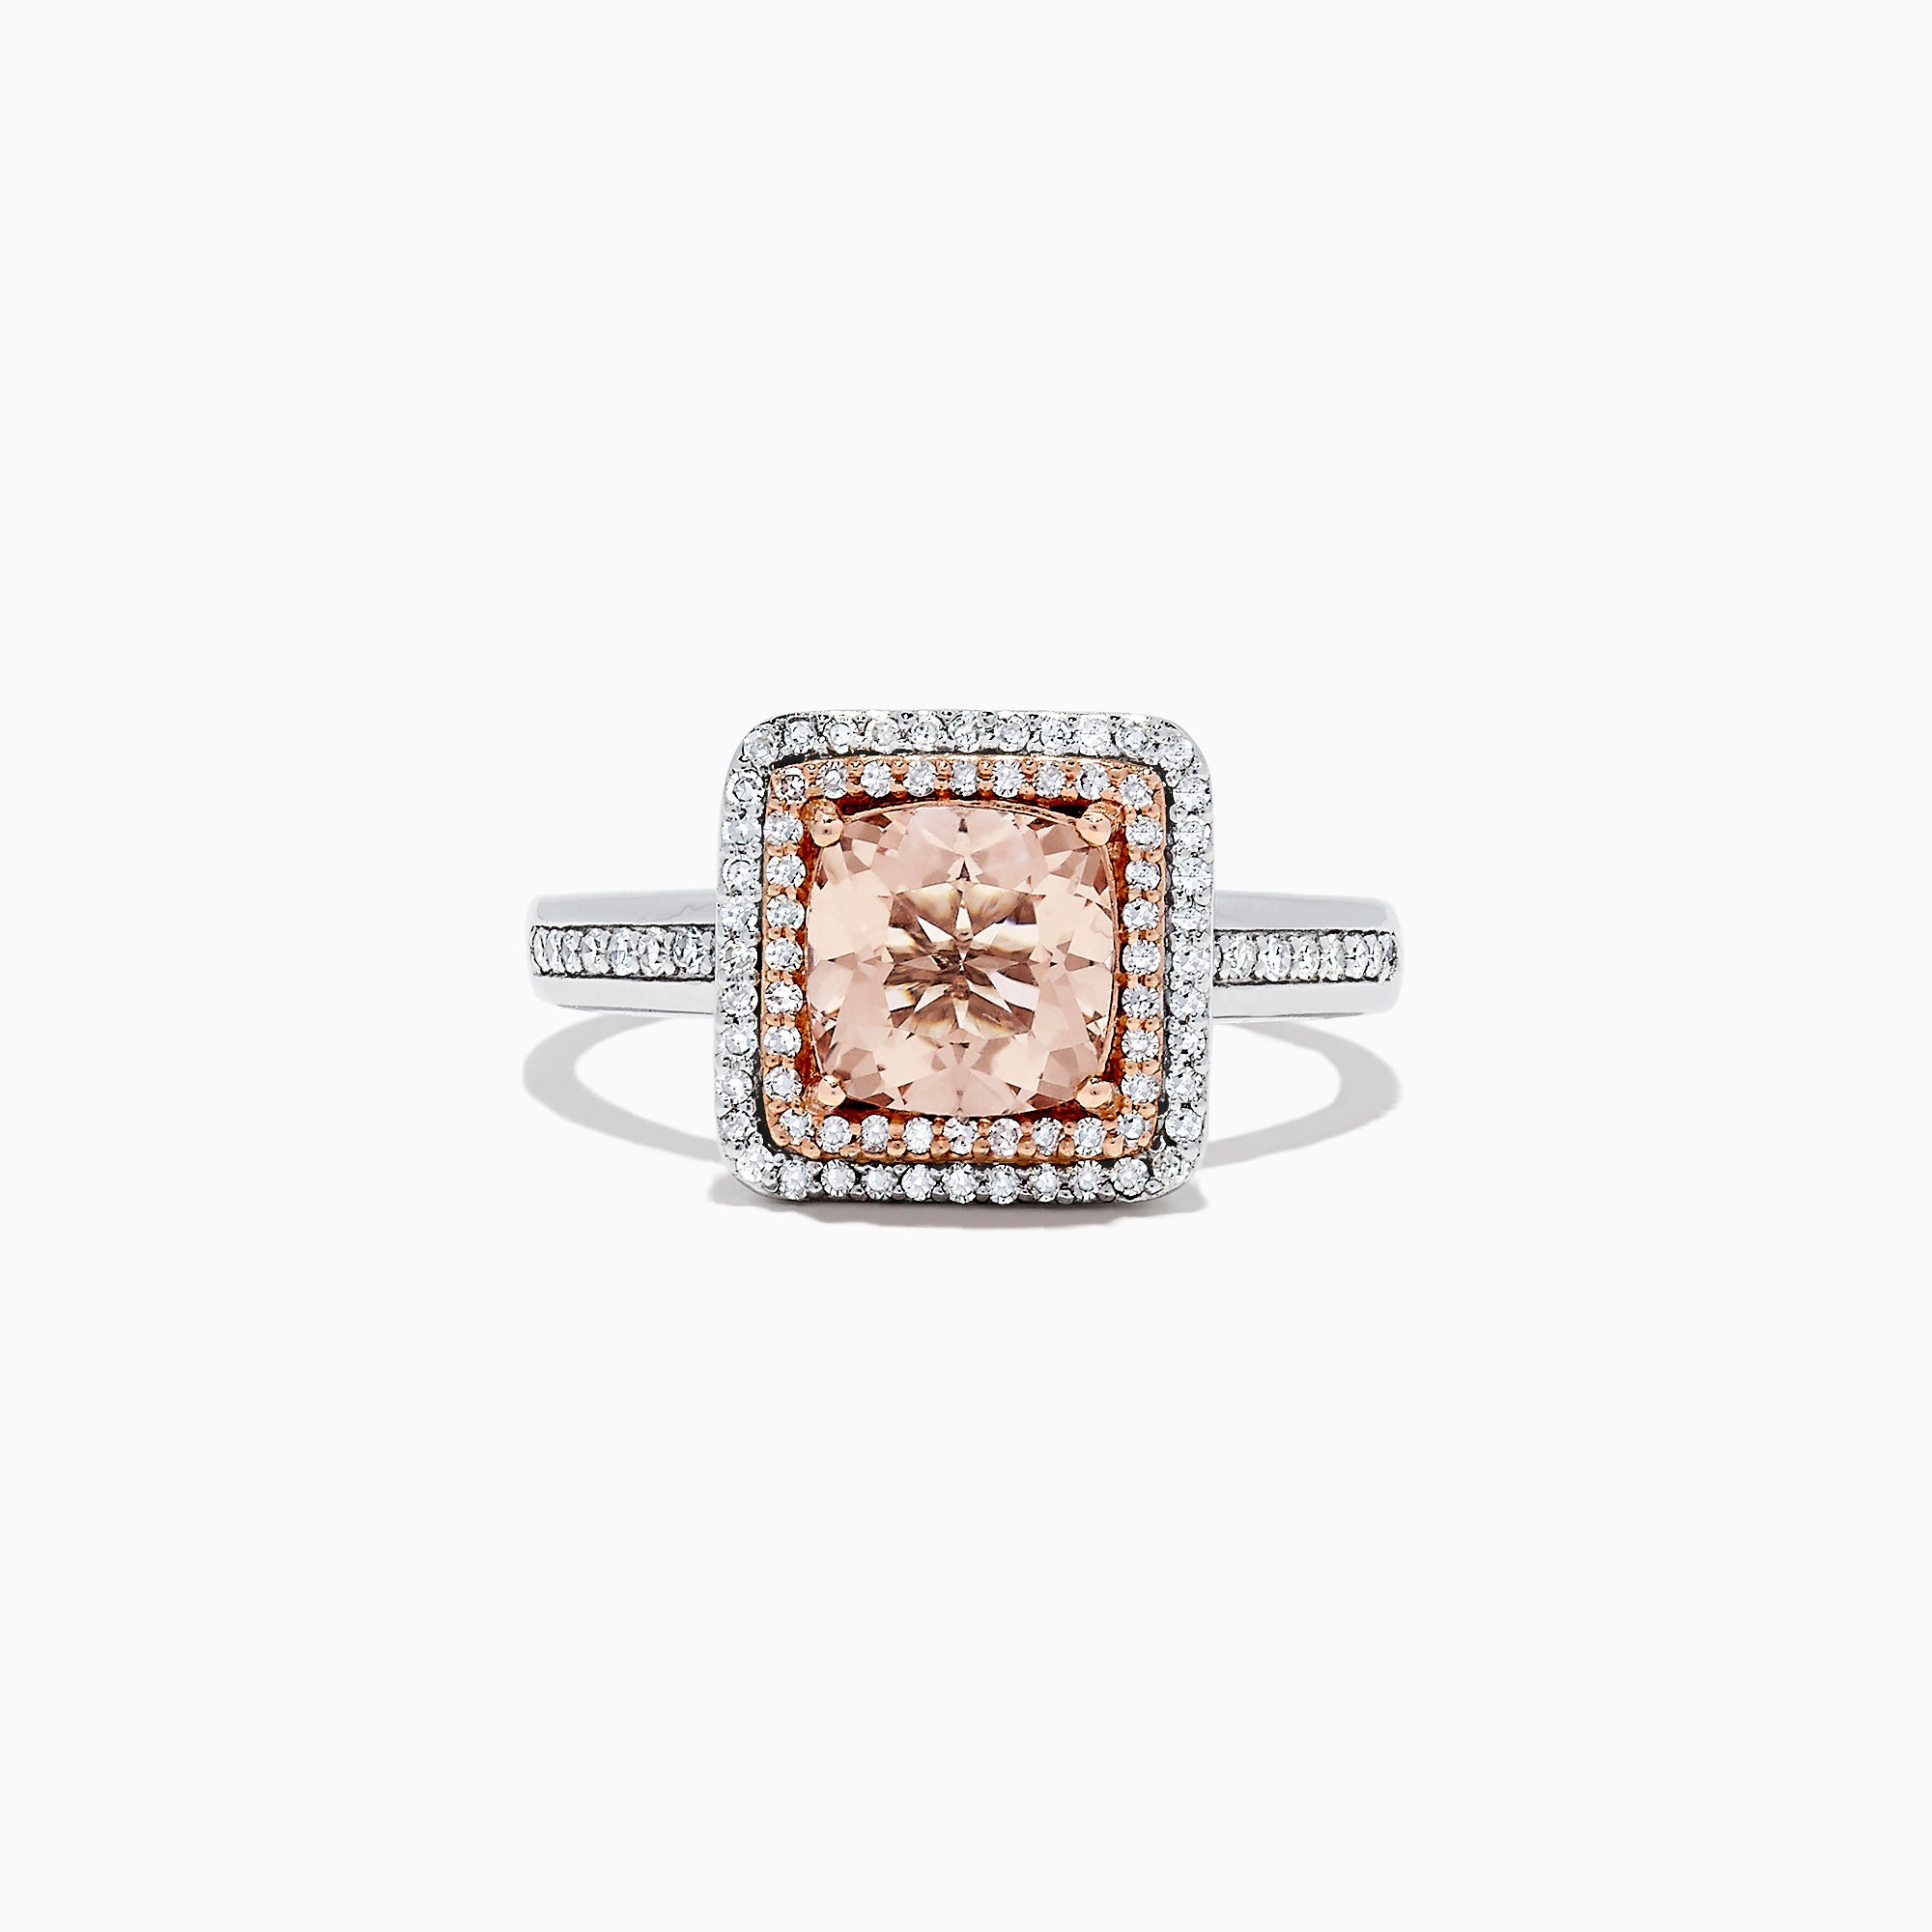 Effy Blush 14K Two Tone Gold Morganite and Diamond Ring, 1.68 TCW